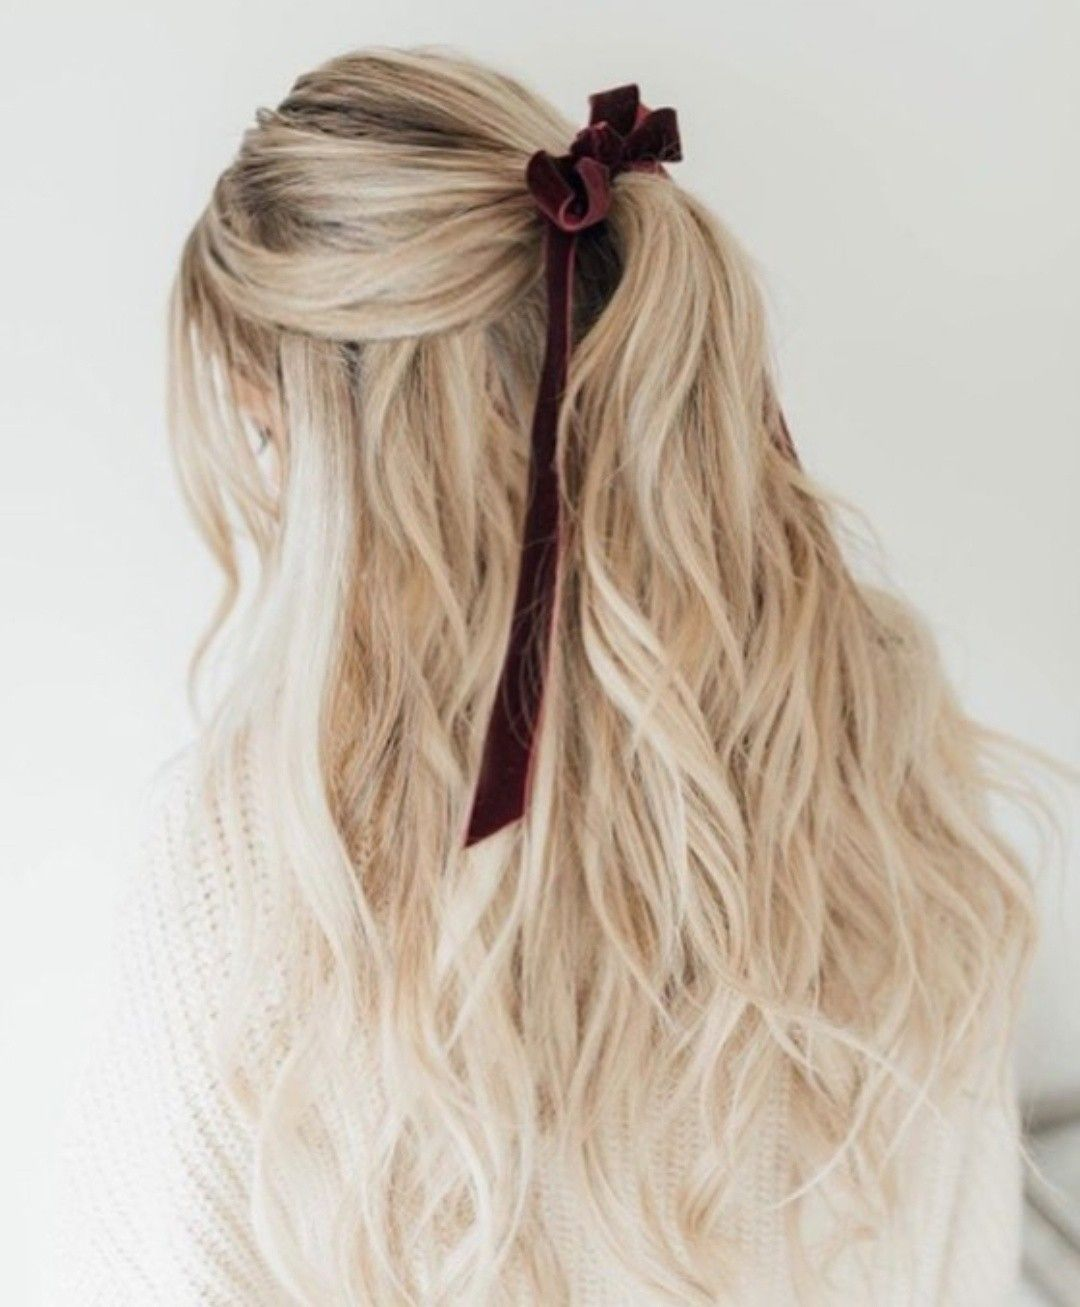 Pin by aubrey k on hair goals pinterest hair style makeup and